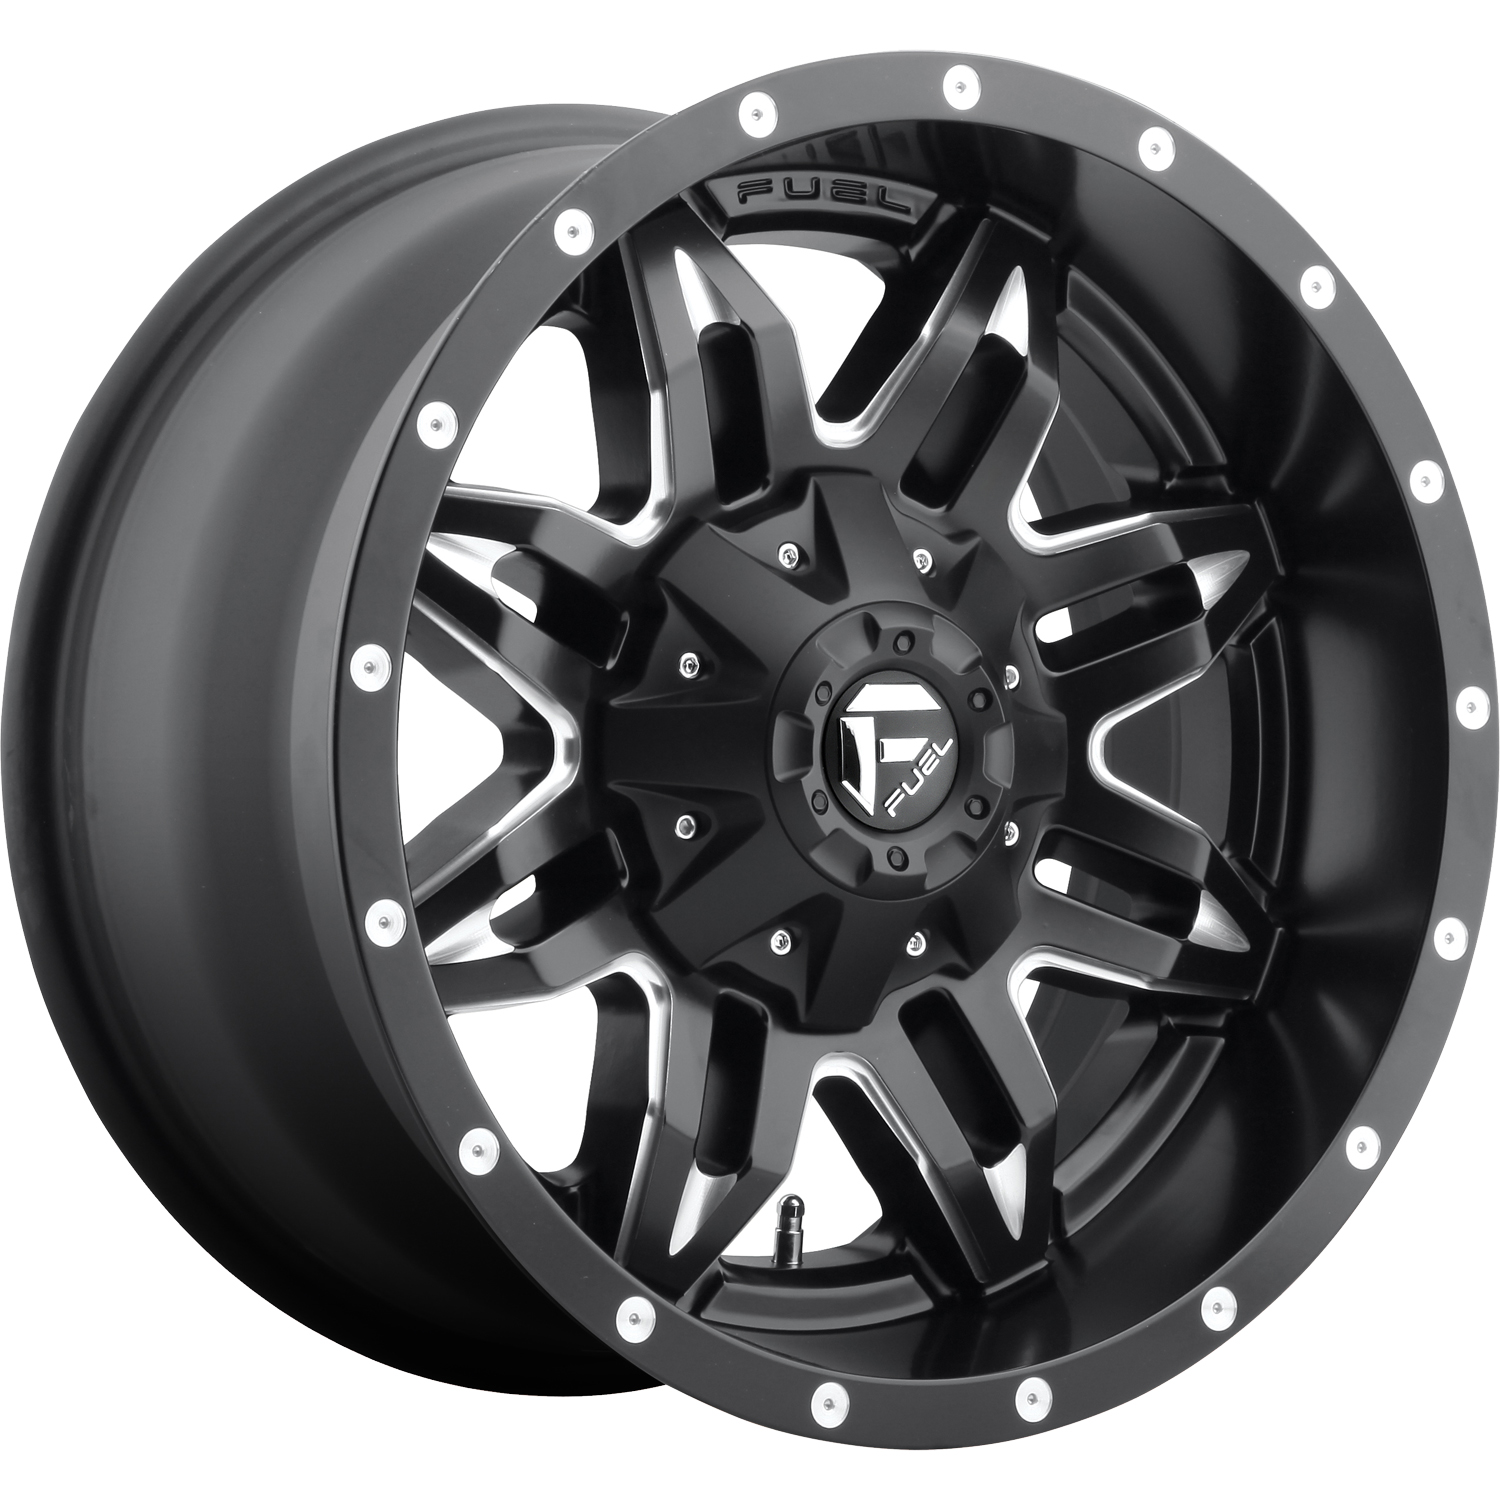 Fuel Lethal 18x9 12